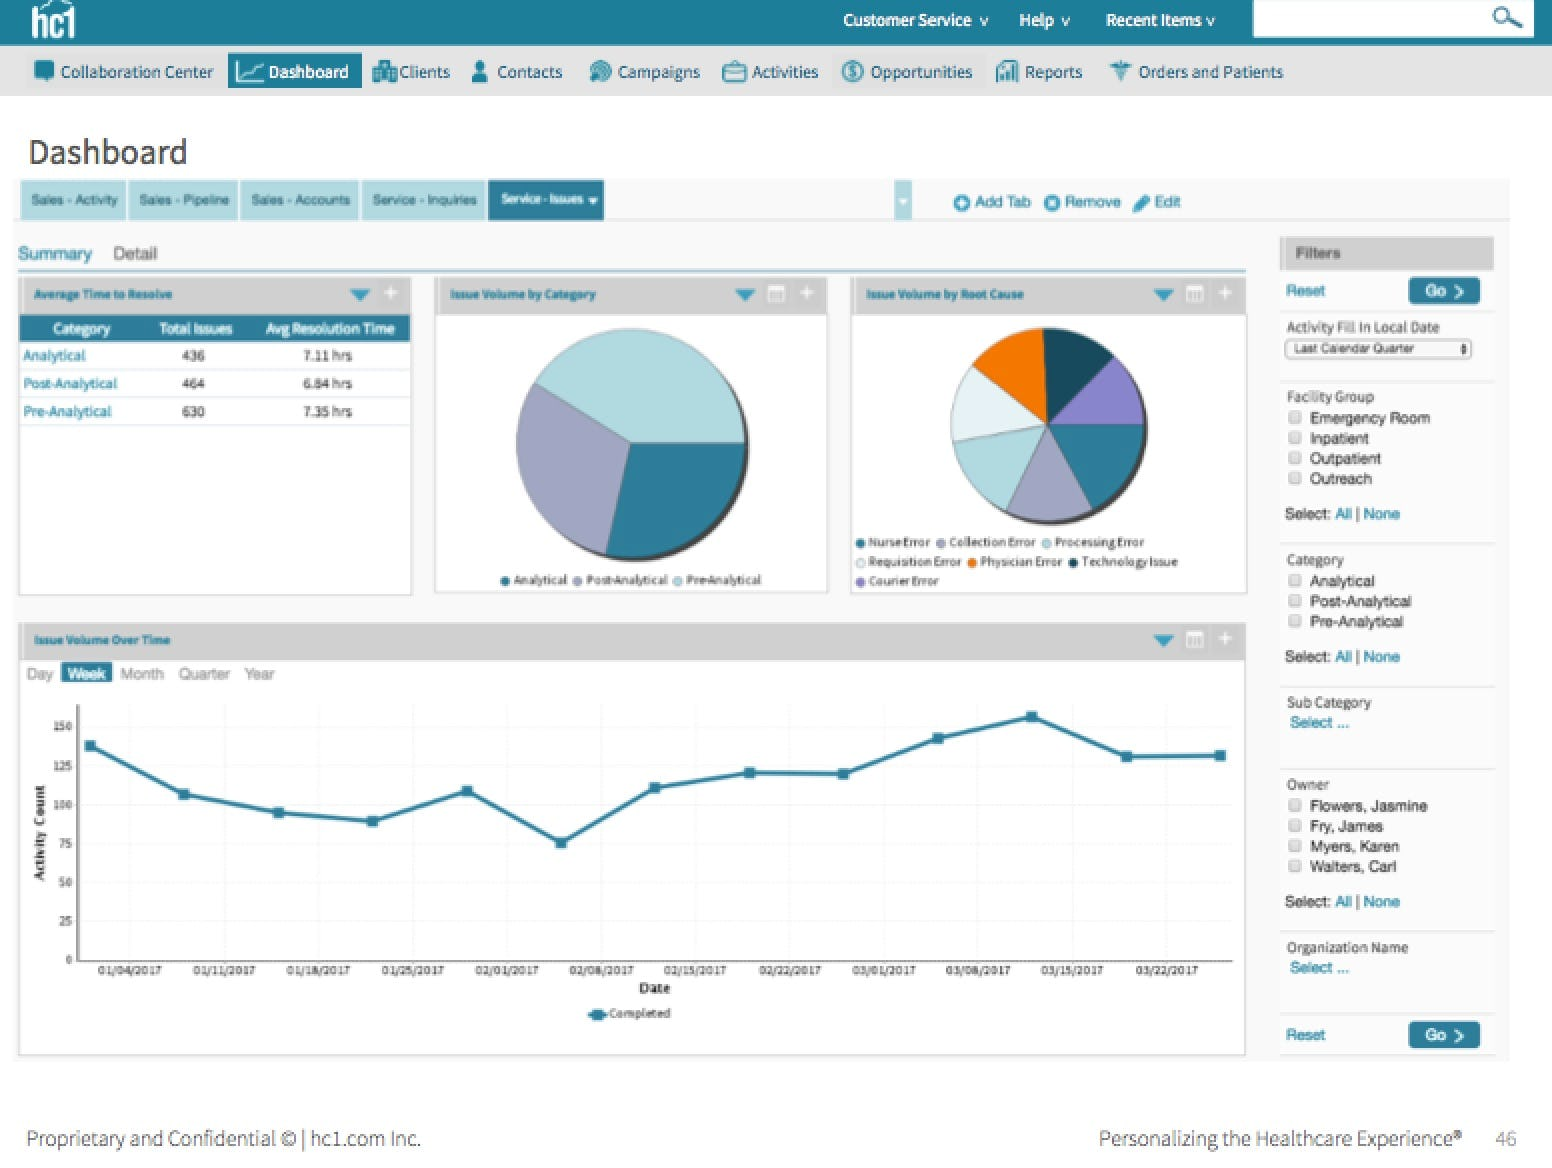 hc1 High-Value Care Platform Software - Service issues dashboard %>